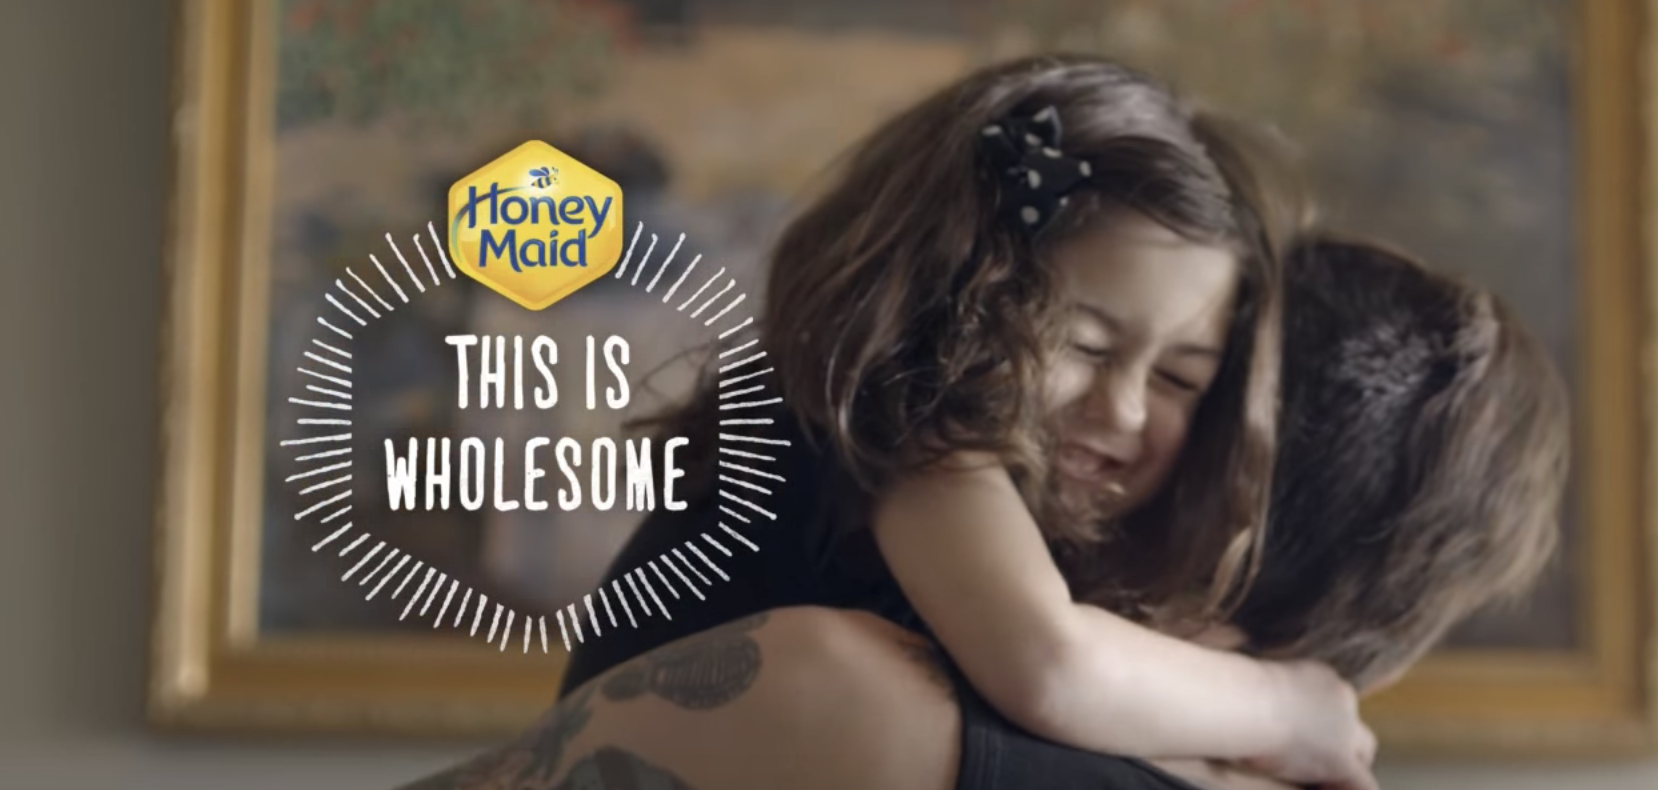 This Is Wholesome    Original Music:  John Morgan Askew   Client:  Honey Maid   Agency:  Droga5